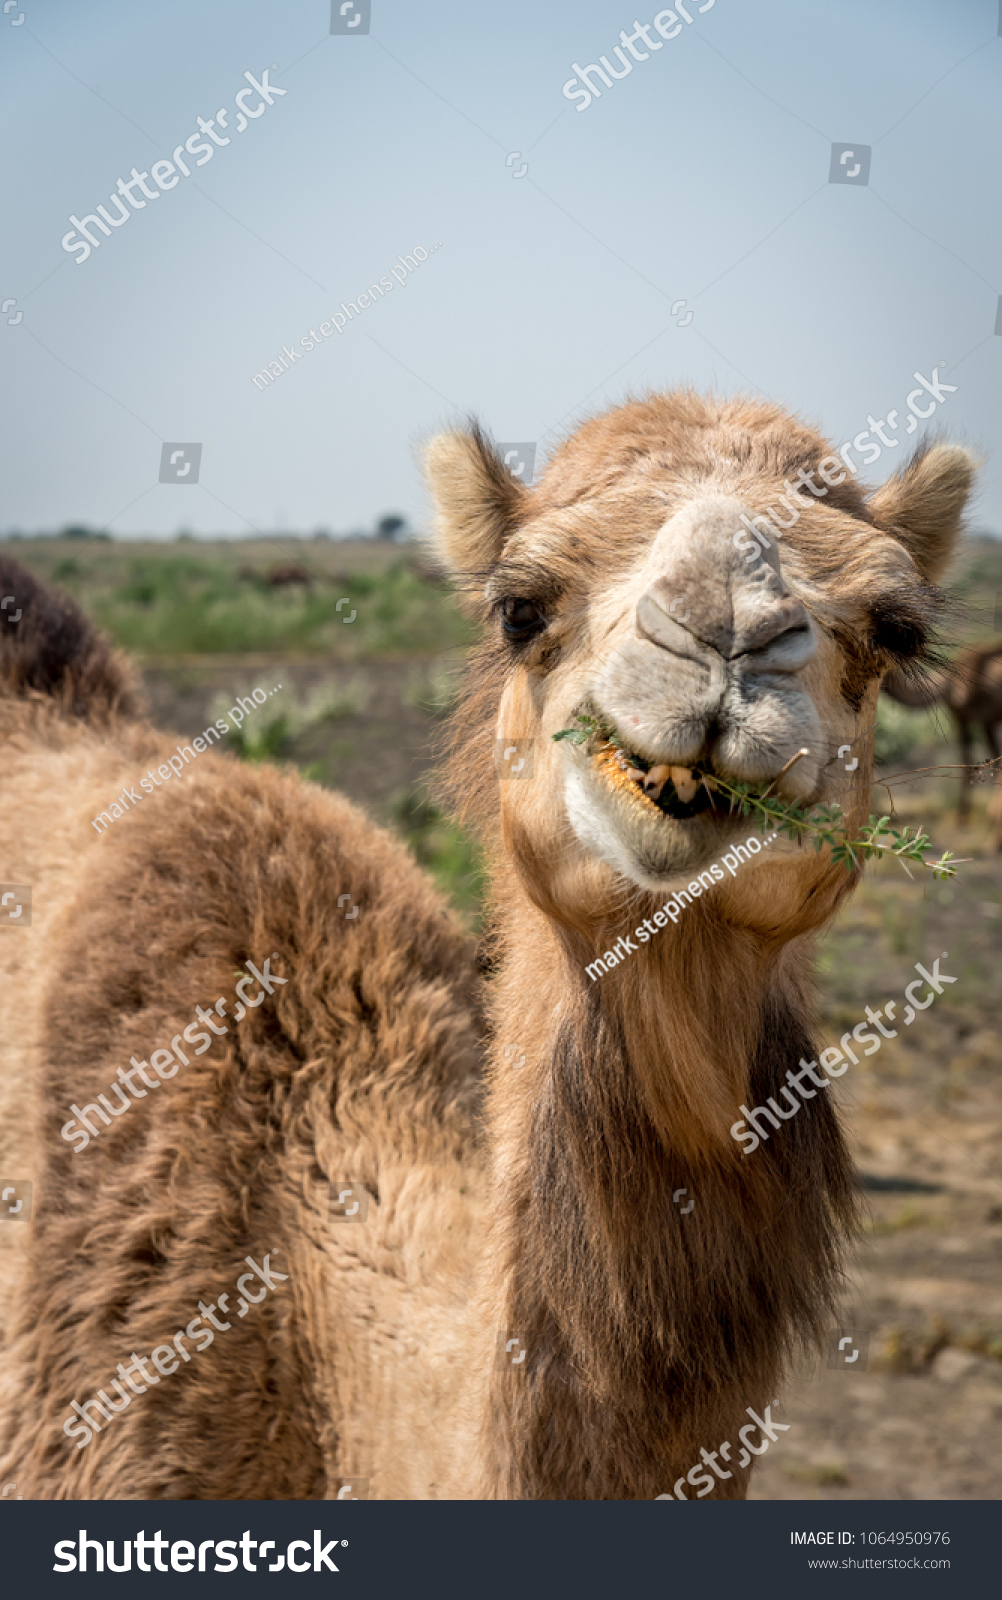 stock-photo-portrait-of-an-indian-dromed